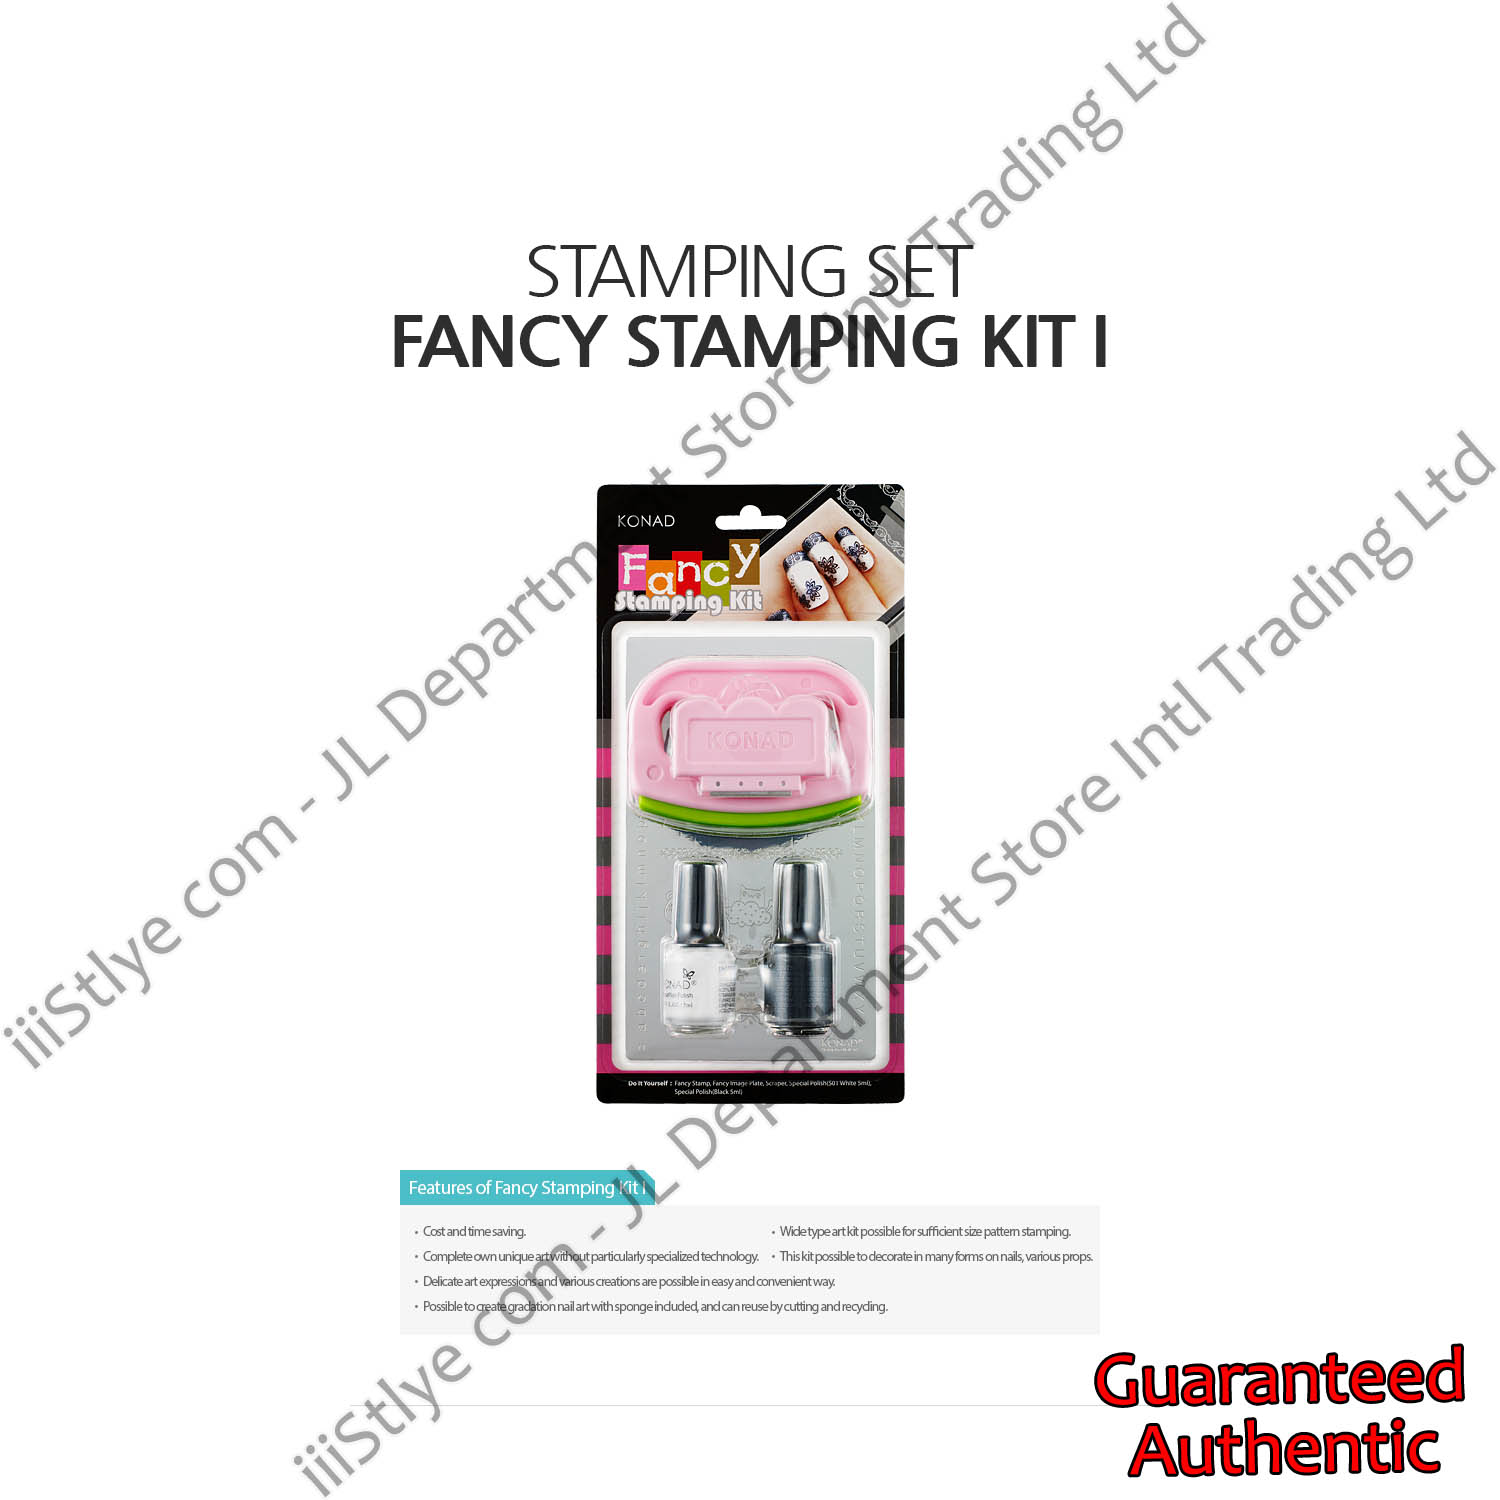 stamping set fancy stamping kit I